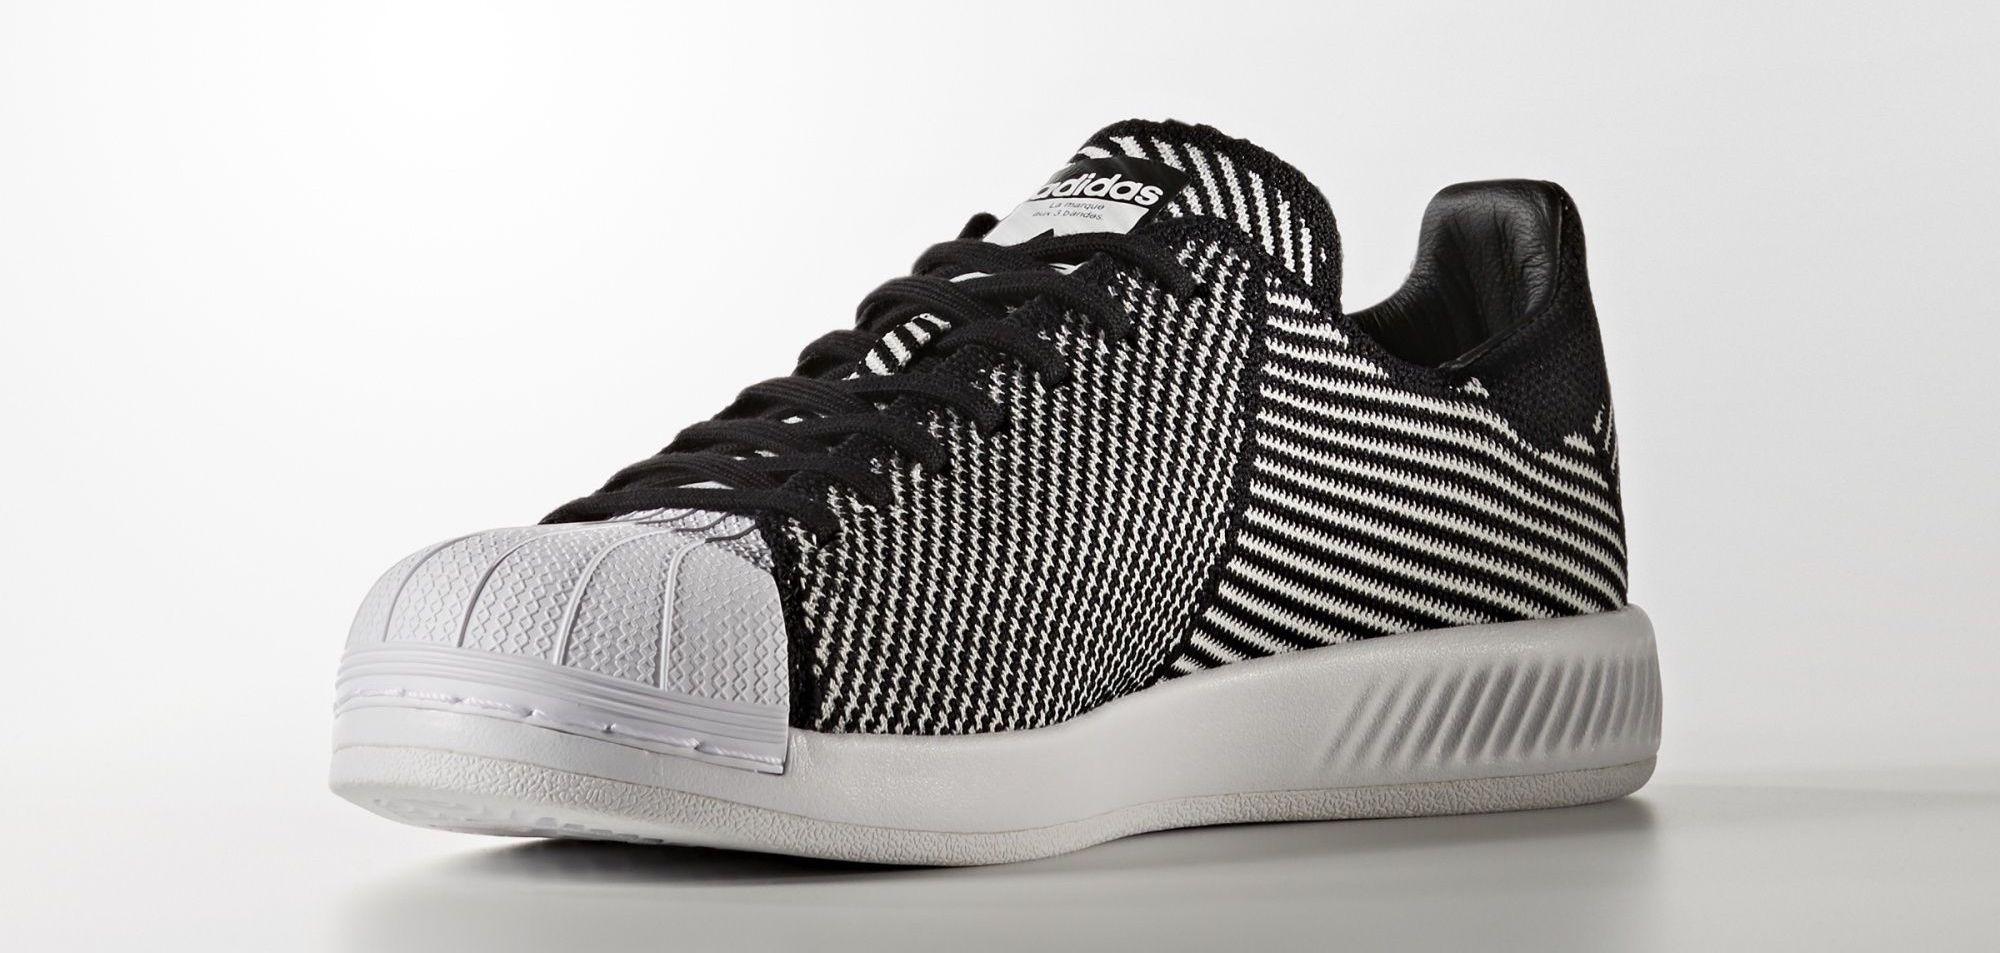 buy online 70ac1 be8c5 The adidas Superstar to Feature Bounce and Primeknit ...